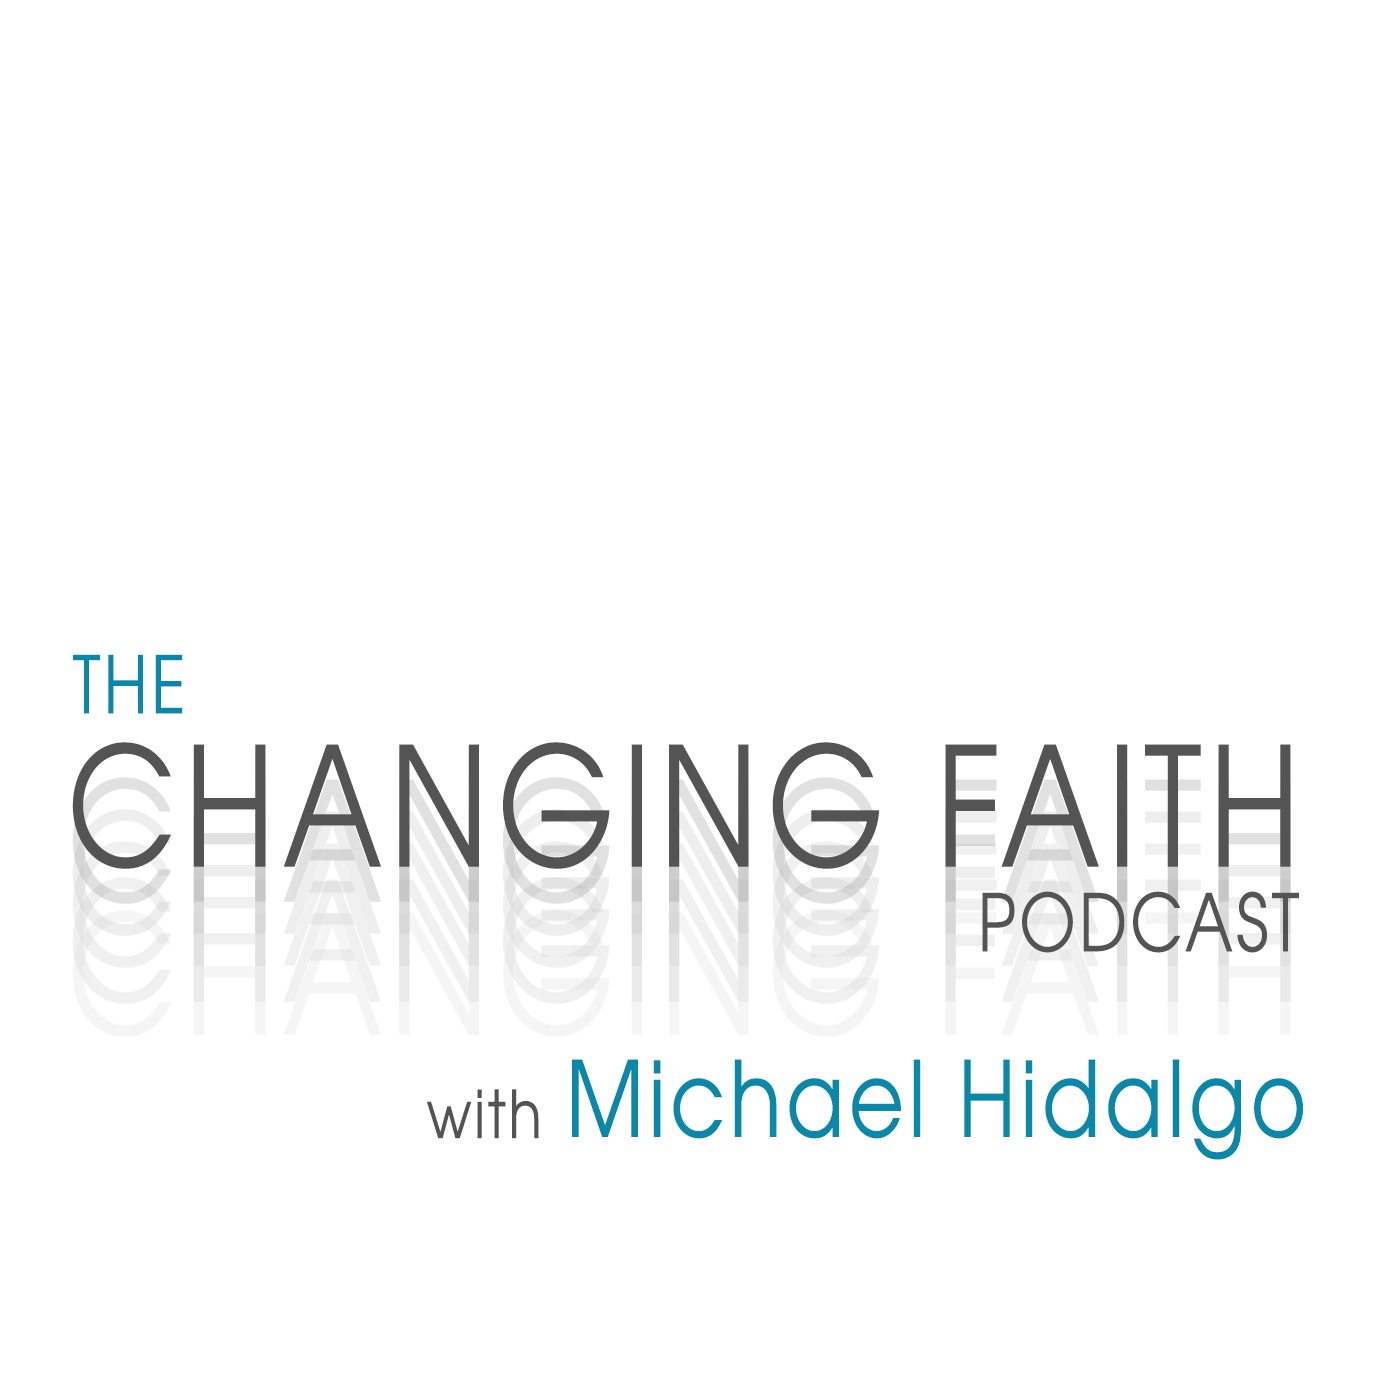 The Changing Faith Podcast with Michael Hidalgo